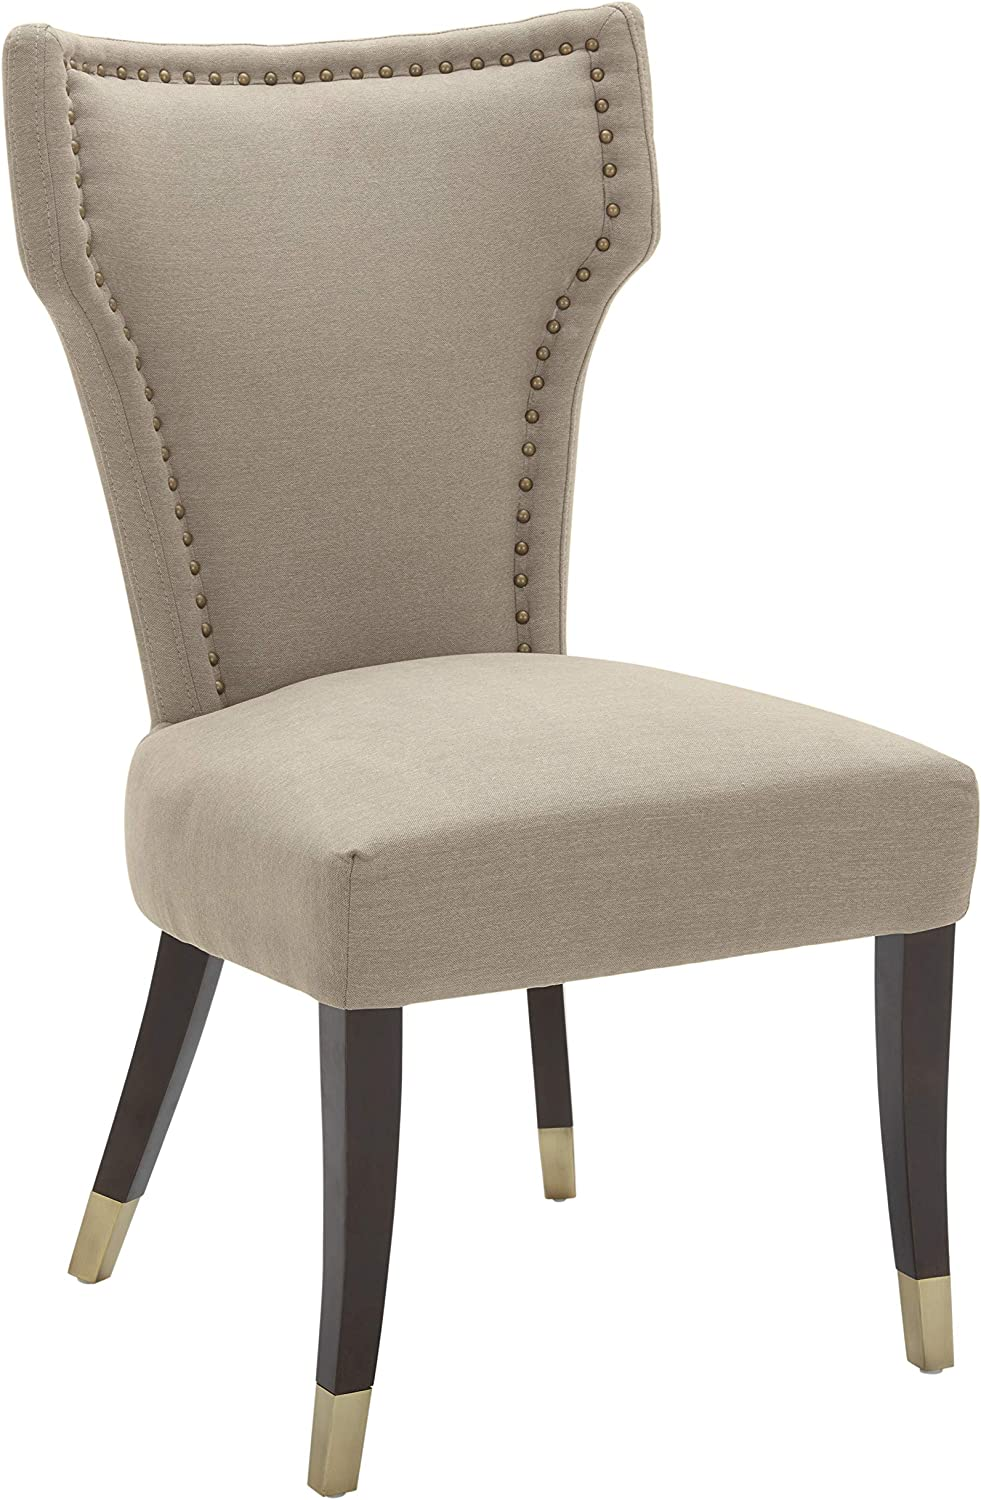 """Stone & Beam Dining Chair with Brushed-Brass Nailhead Trim, 39""""H, Fawn (Pack of 2)"""